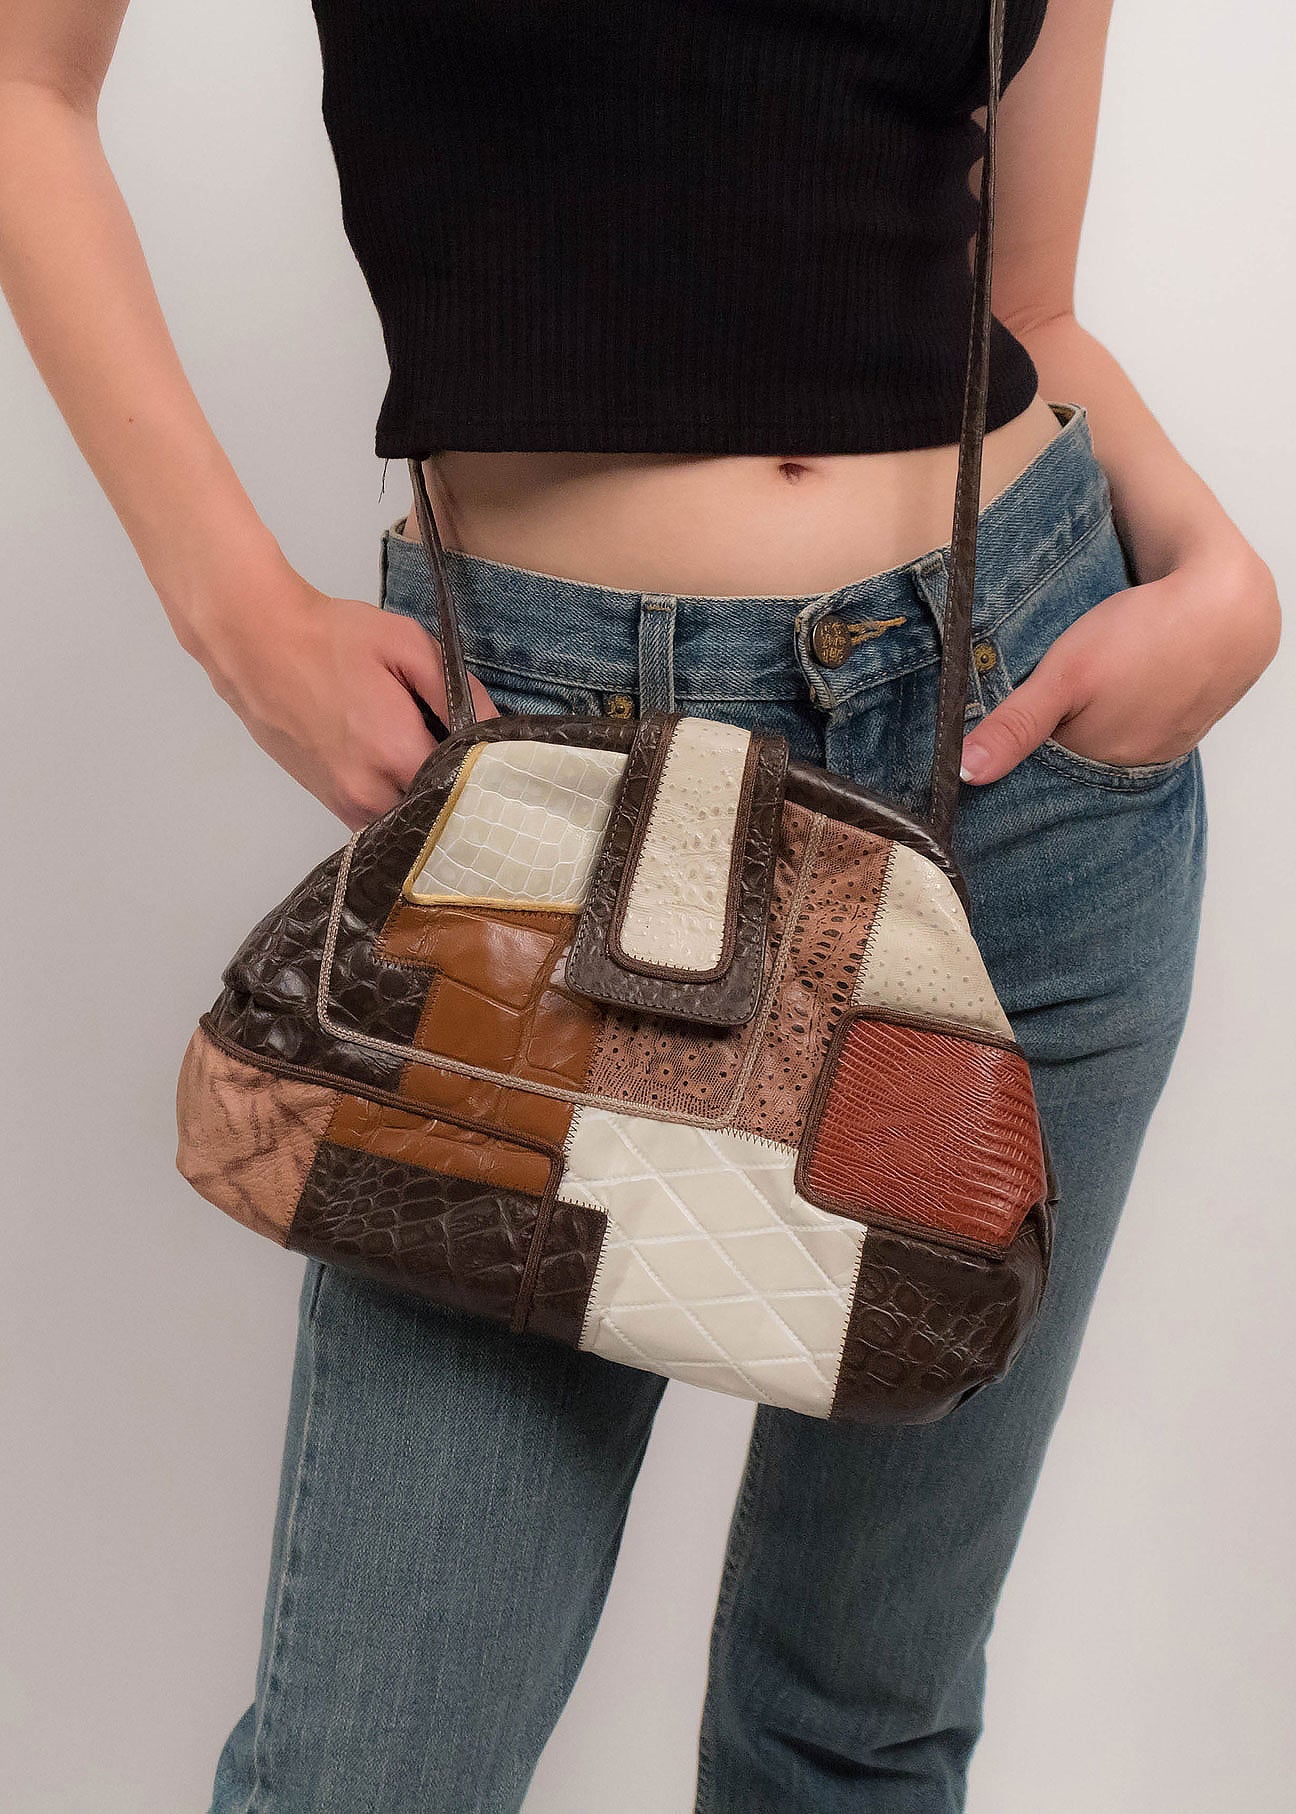 80s Faux Leather Patchwork Purse